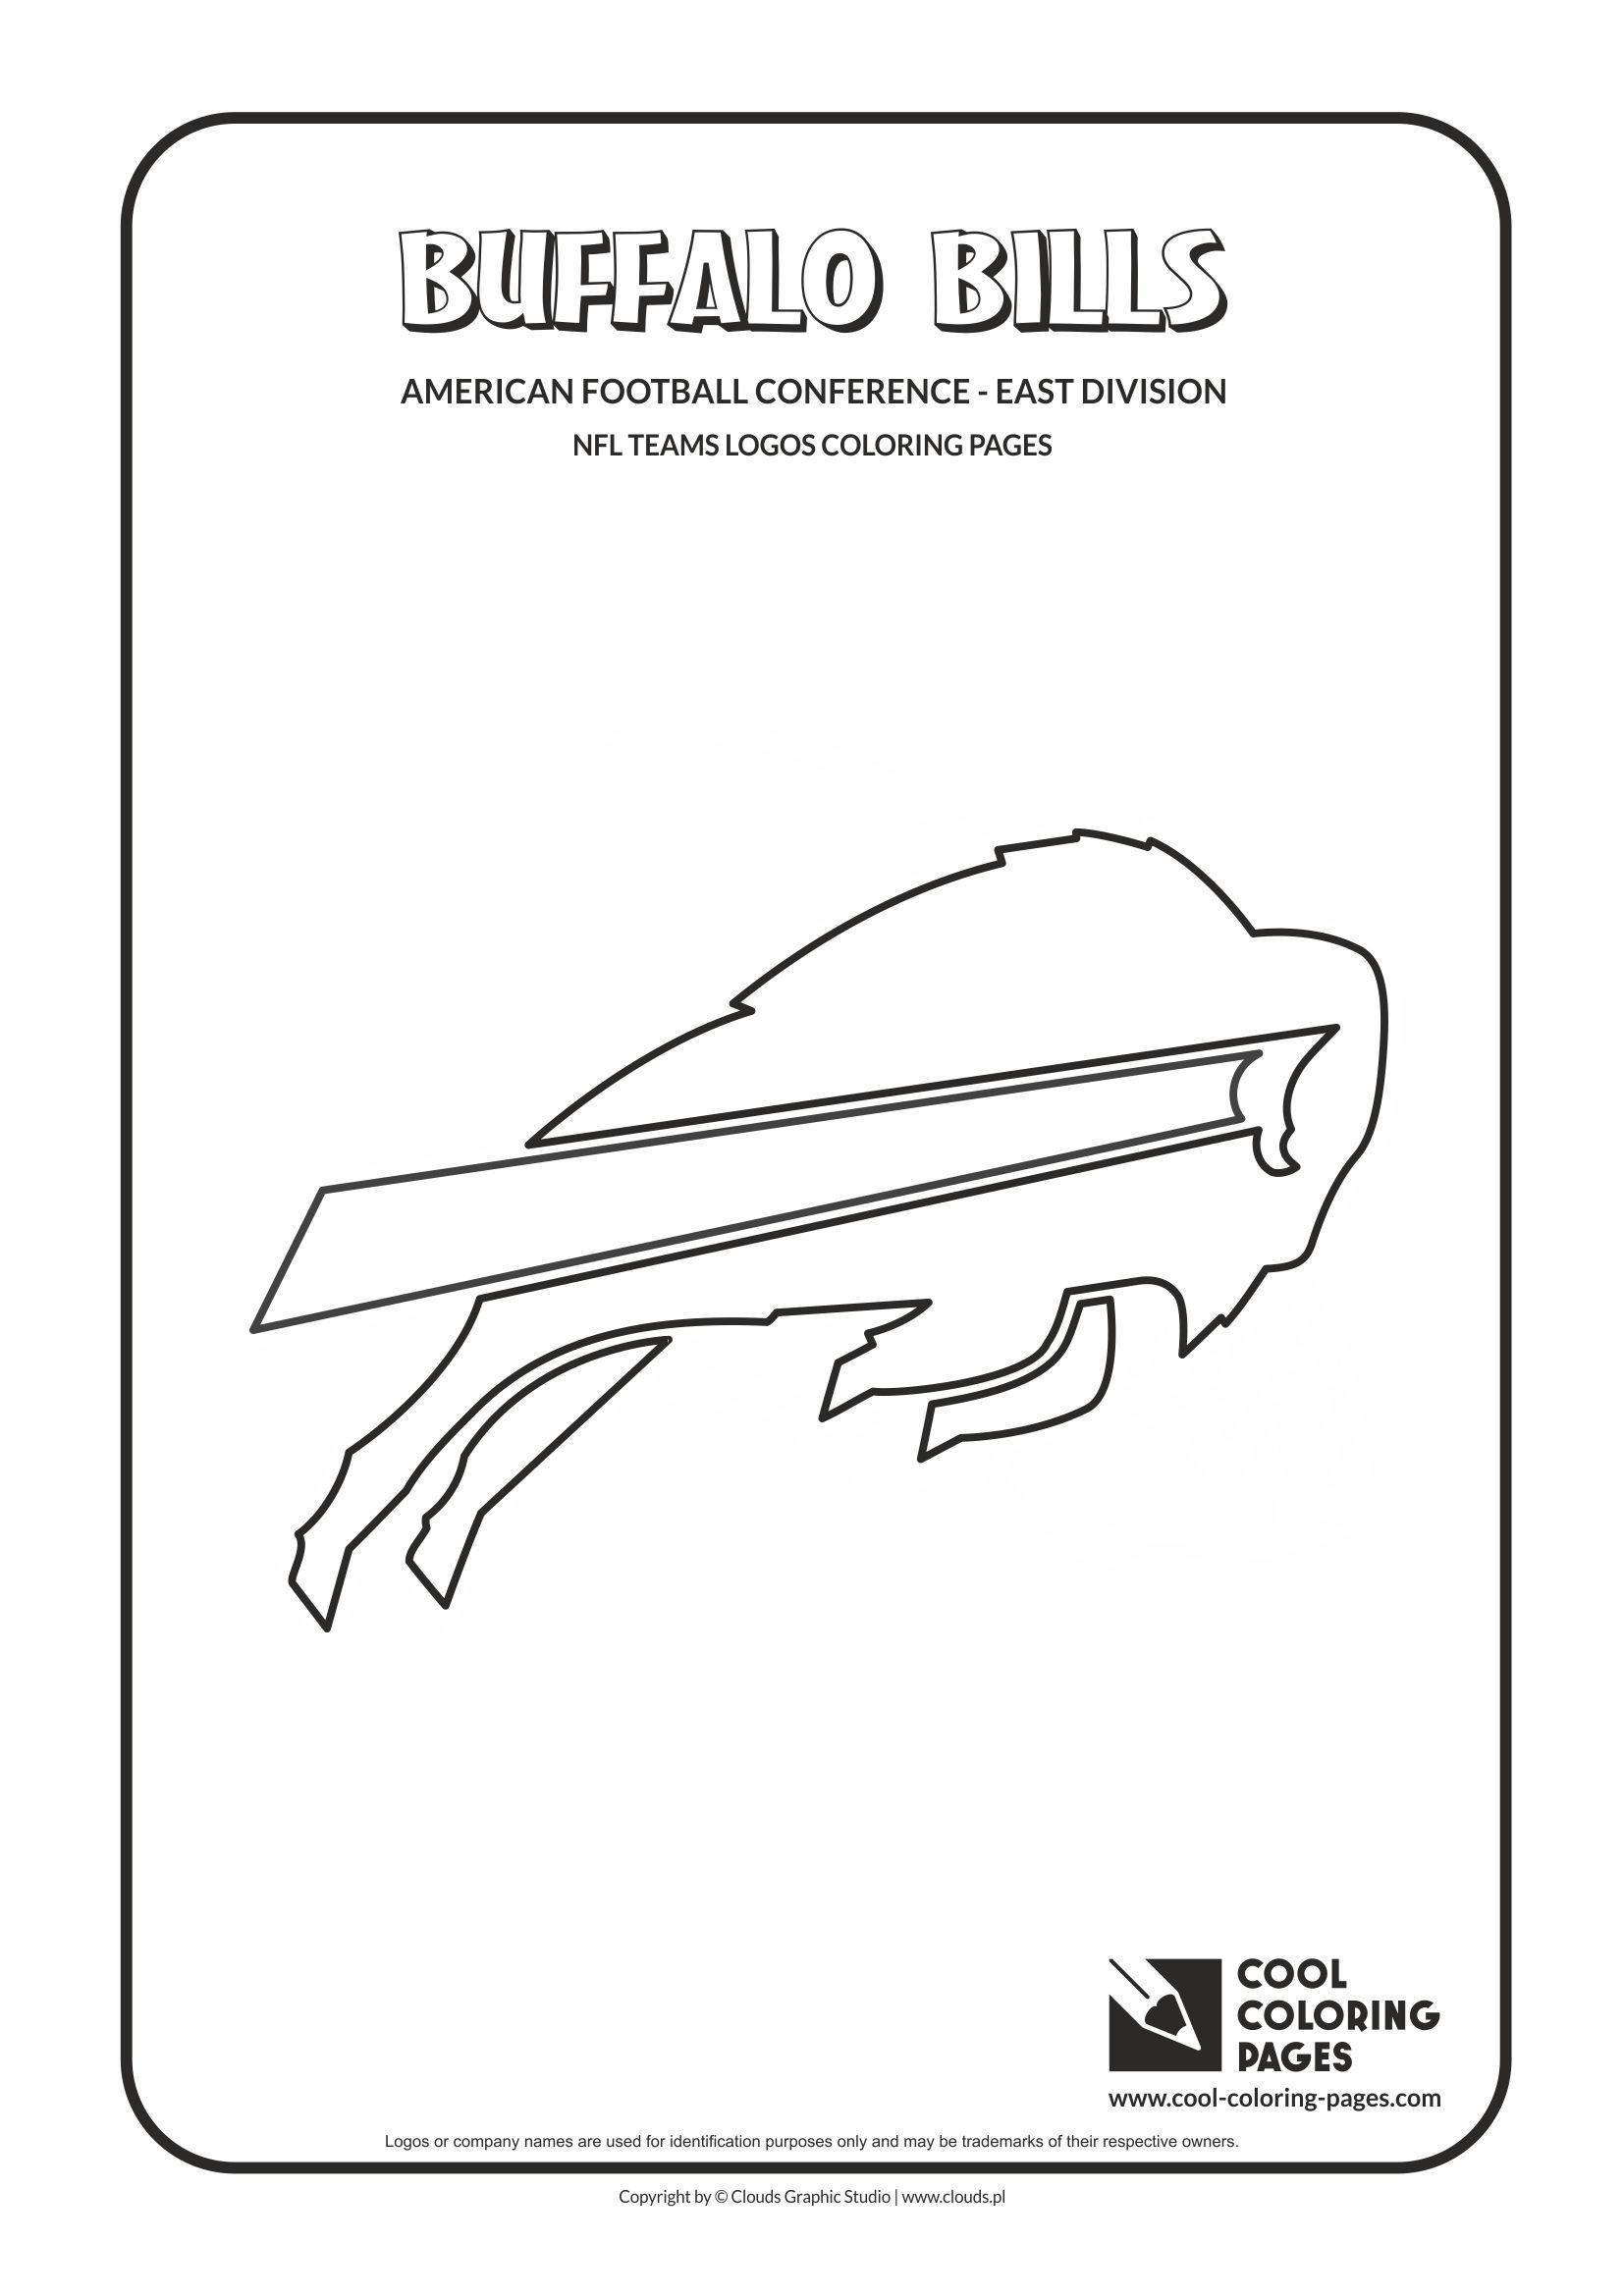 Cool Coloring Pages - NFL American Football Clubs Logos - American ...